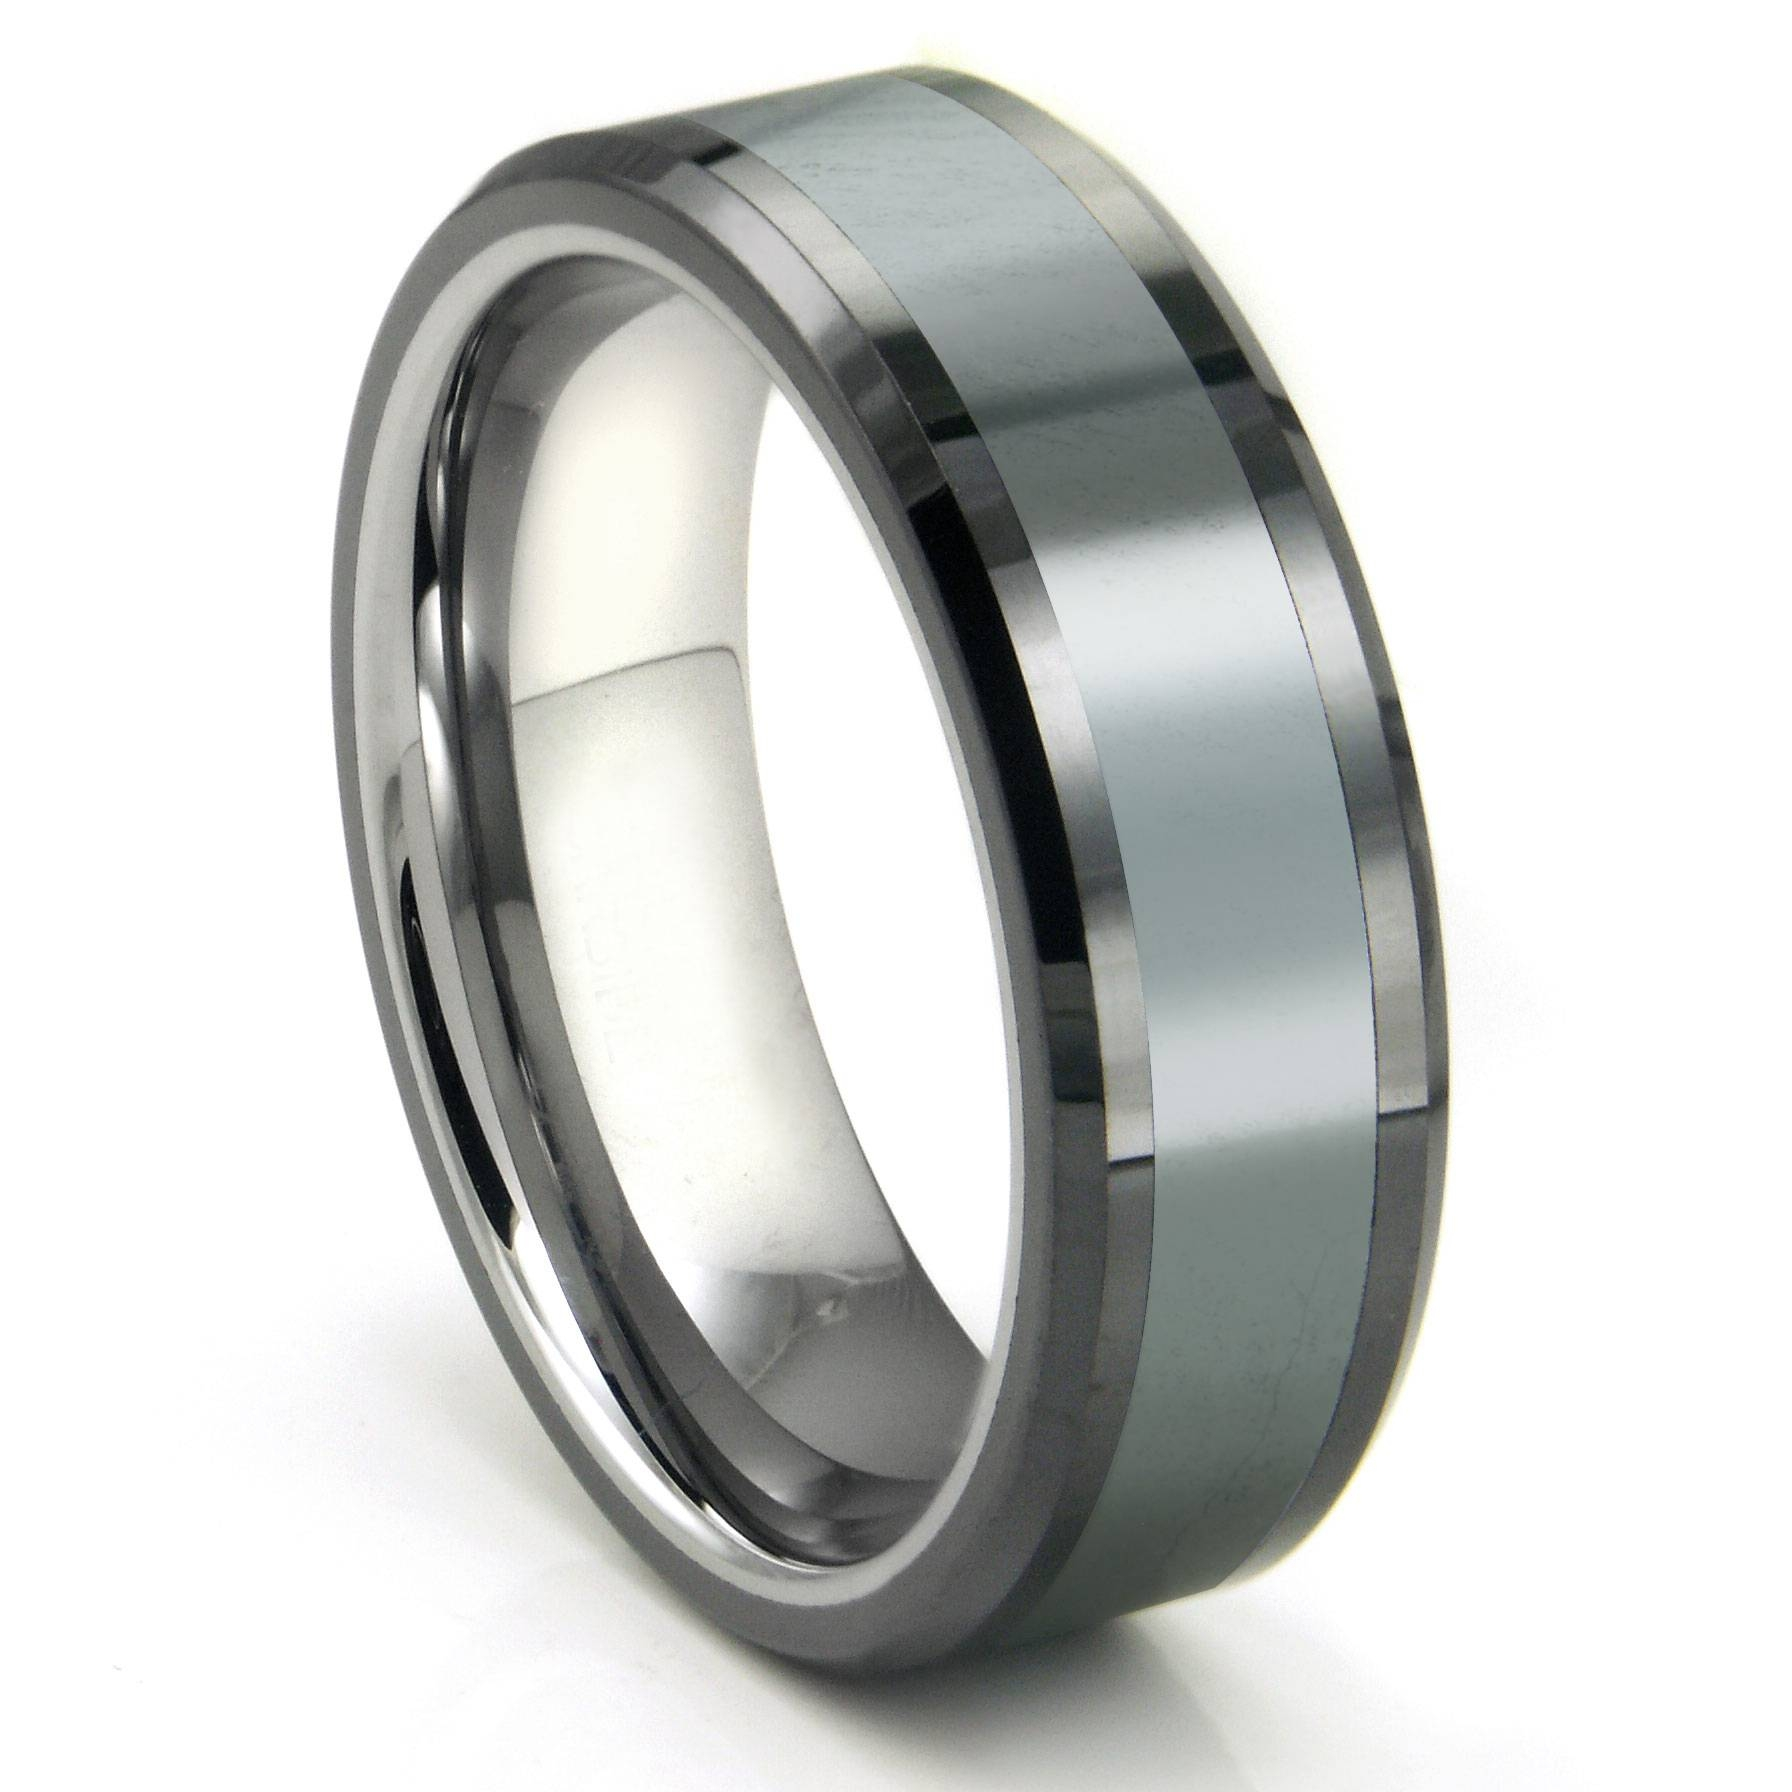 Mens Tungsten Rings & Wedding Bands – Titanium Kay With Regard To Mens Camo Tungsten Wedding Bands (View 11 of 15)